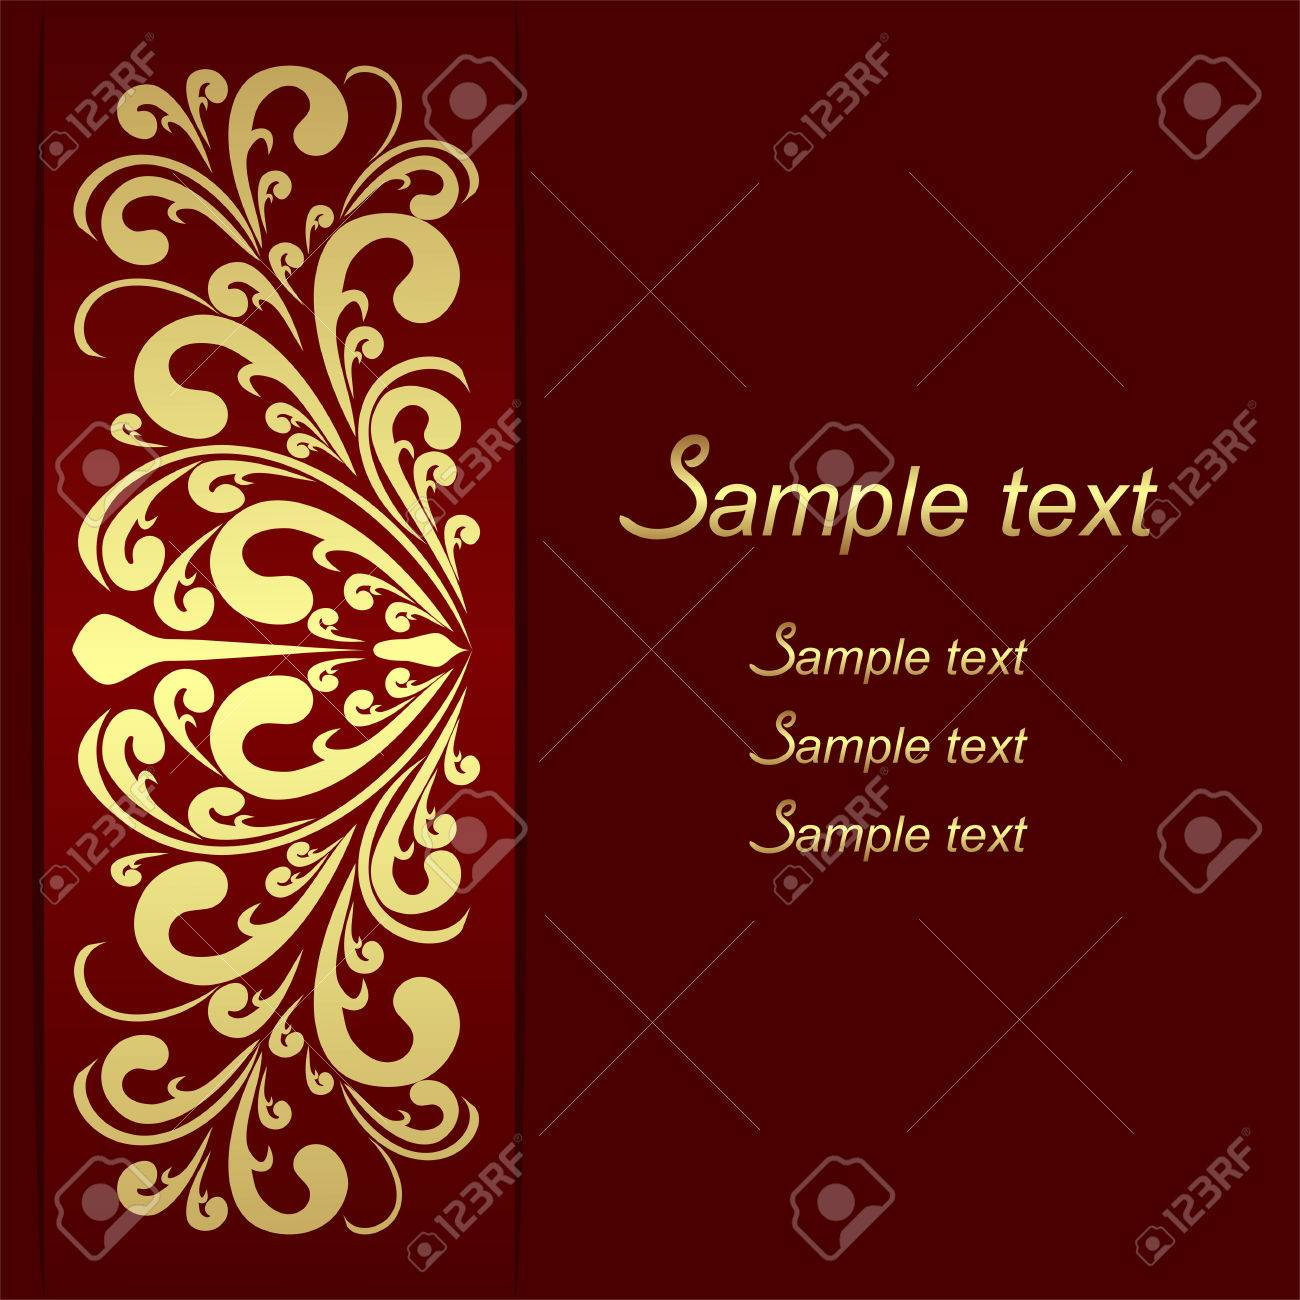 Luxury Background With Ornamental Golden Border